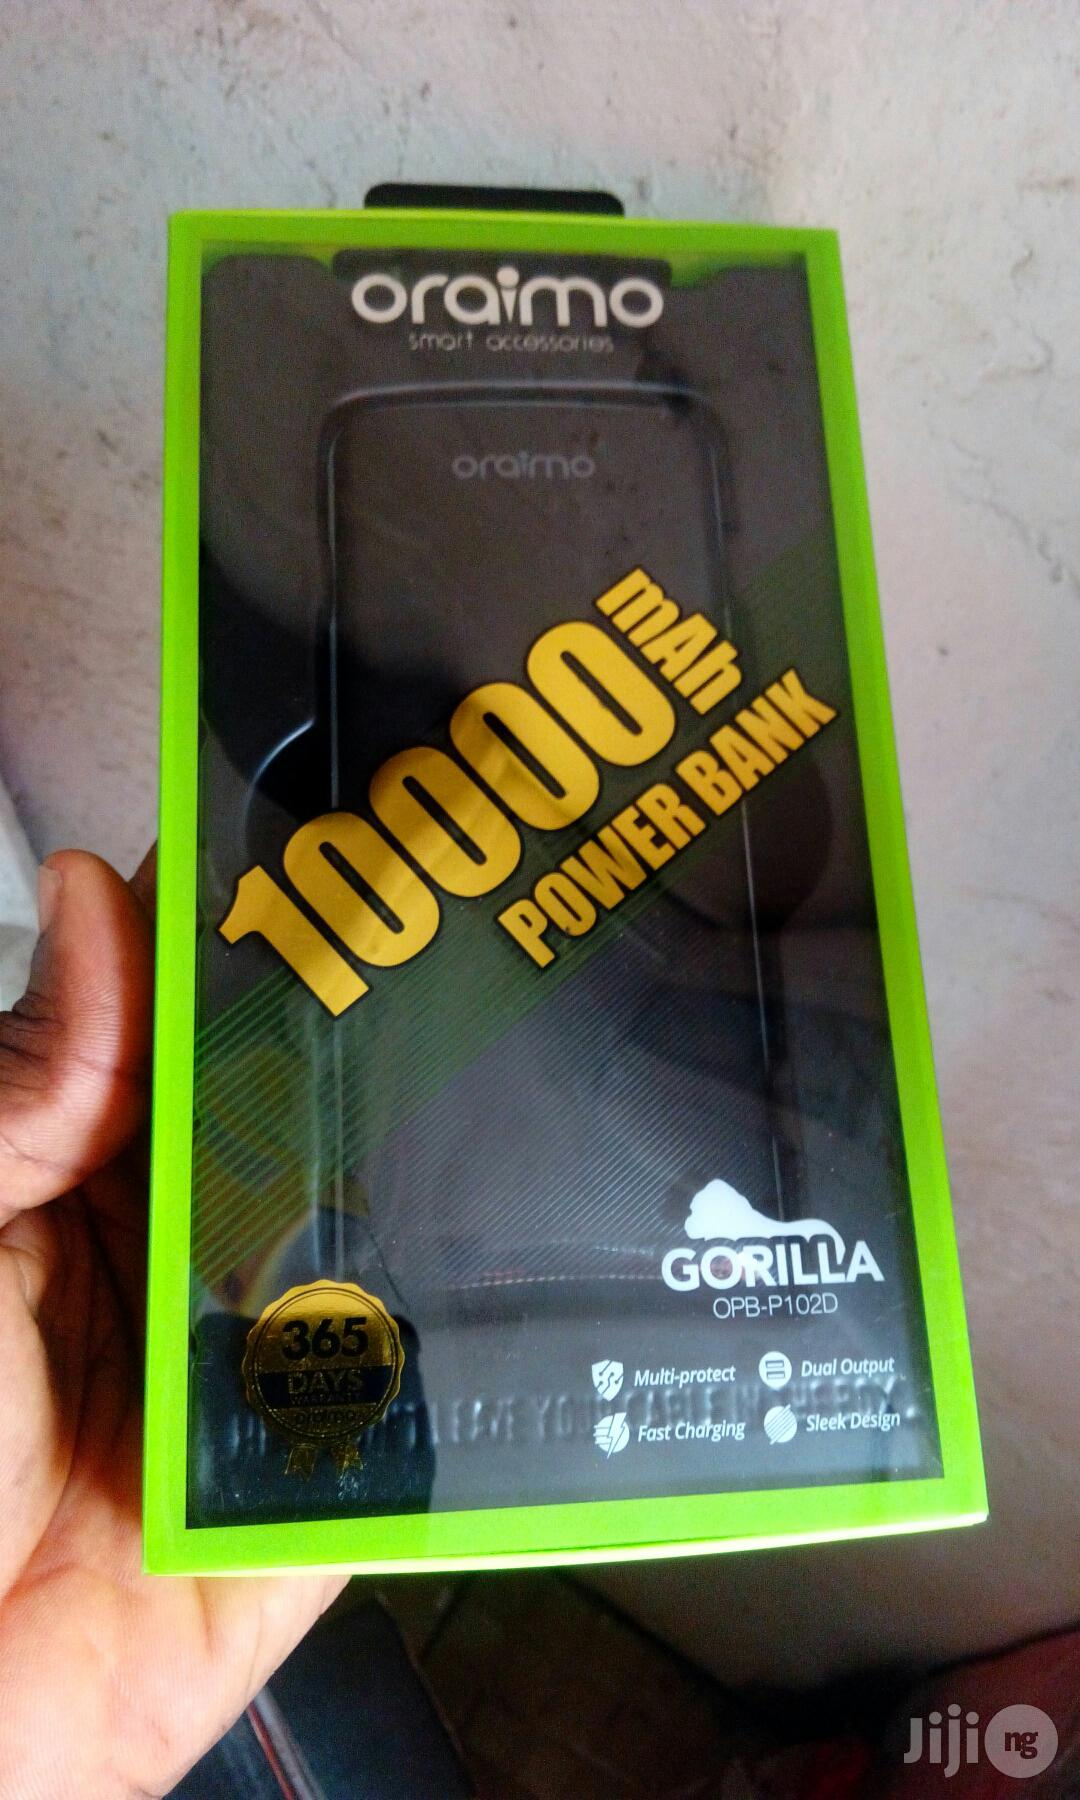 Oraimo Power Bank 10000mah | Accessories for Mobile Phones & Tablets for sale in Ikeja, Lagos State, Nigeria